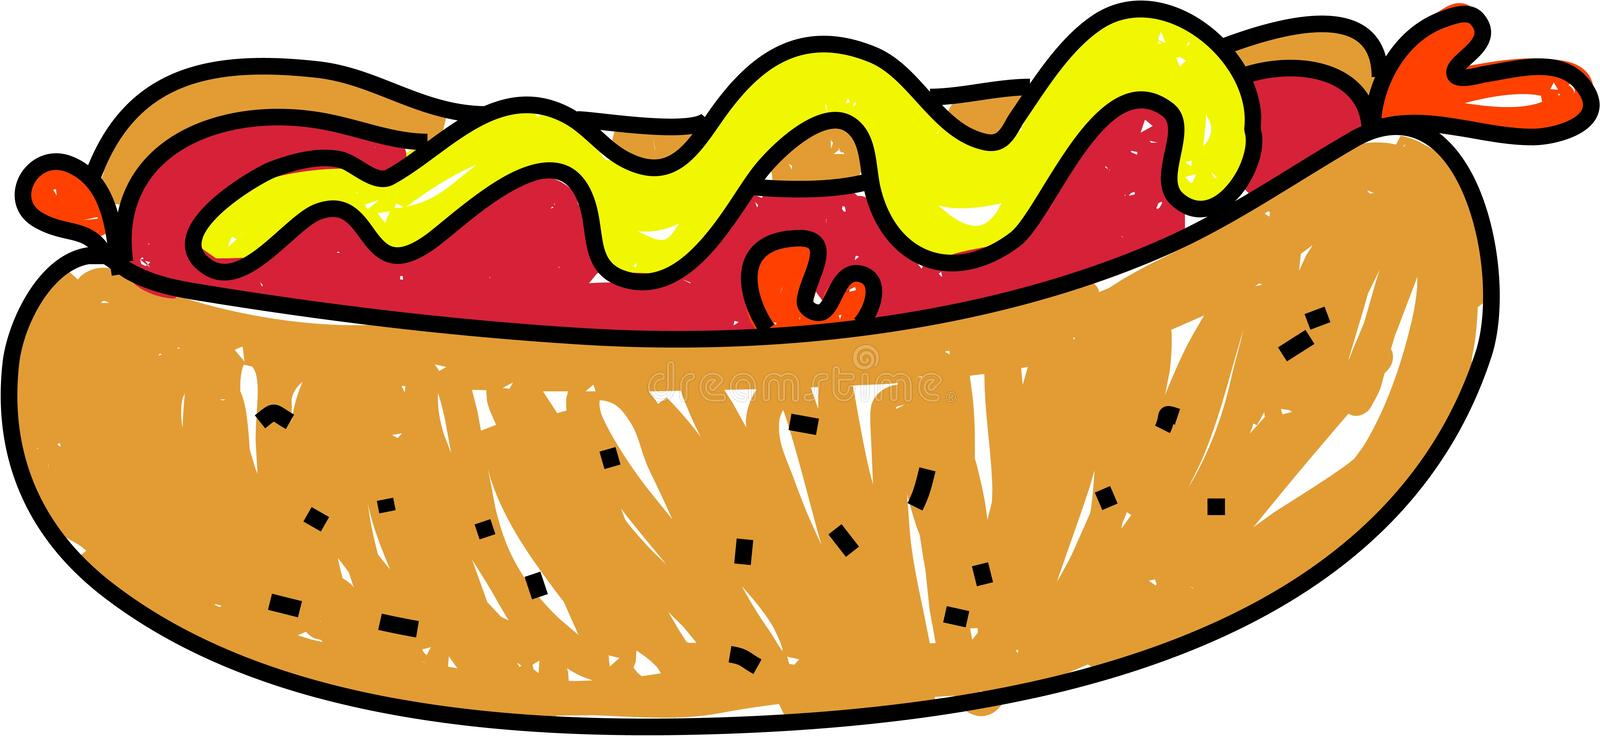 Hot dog illustrazione vettoriale